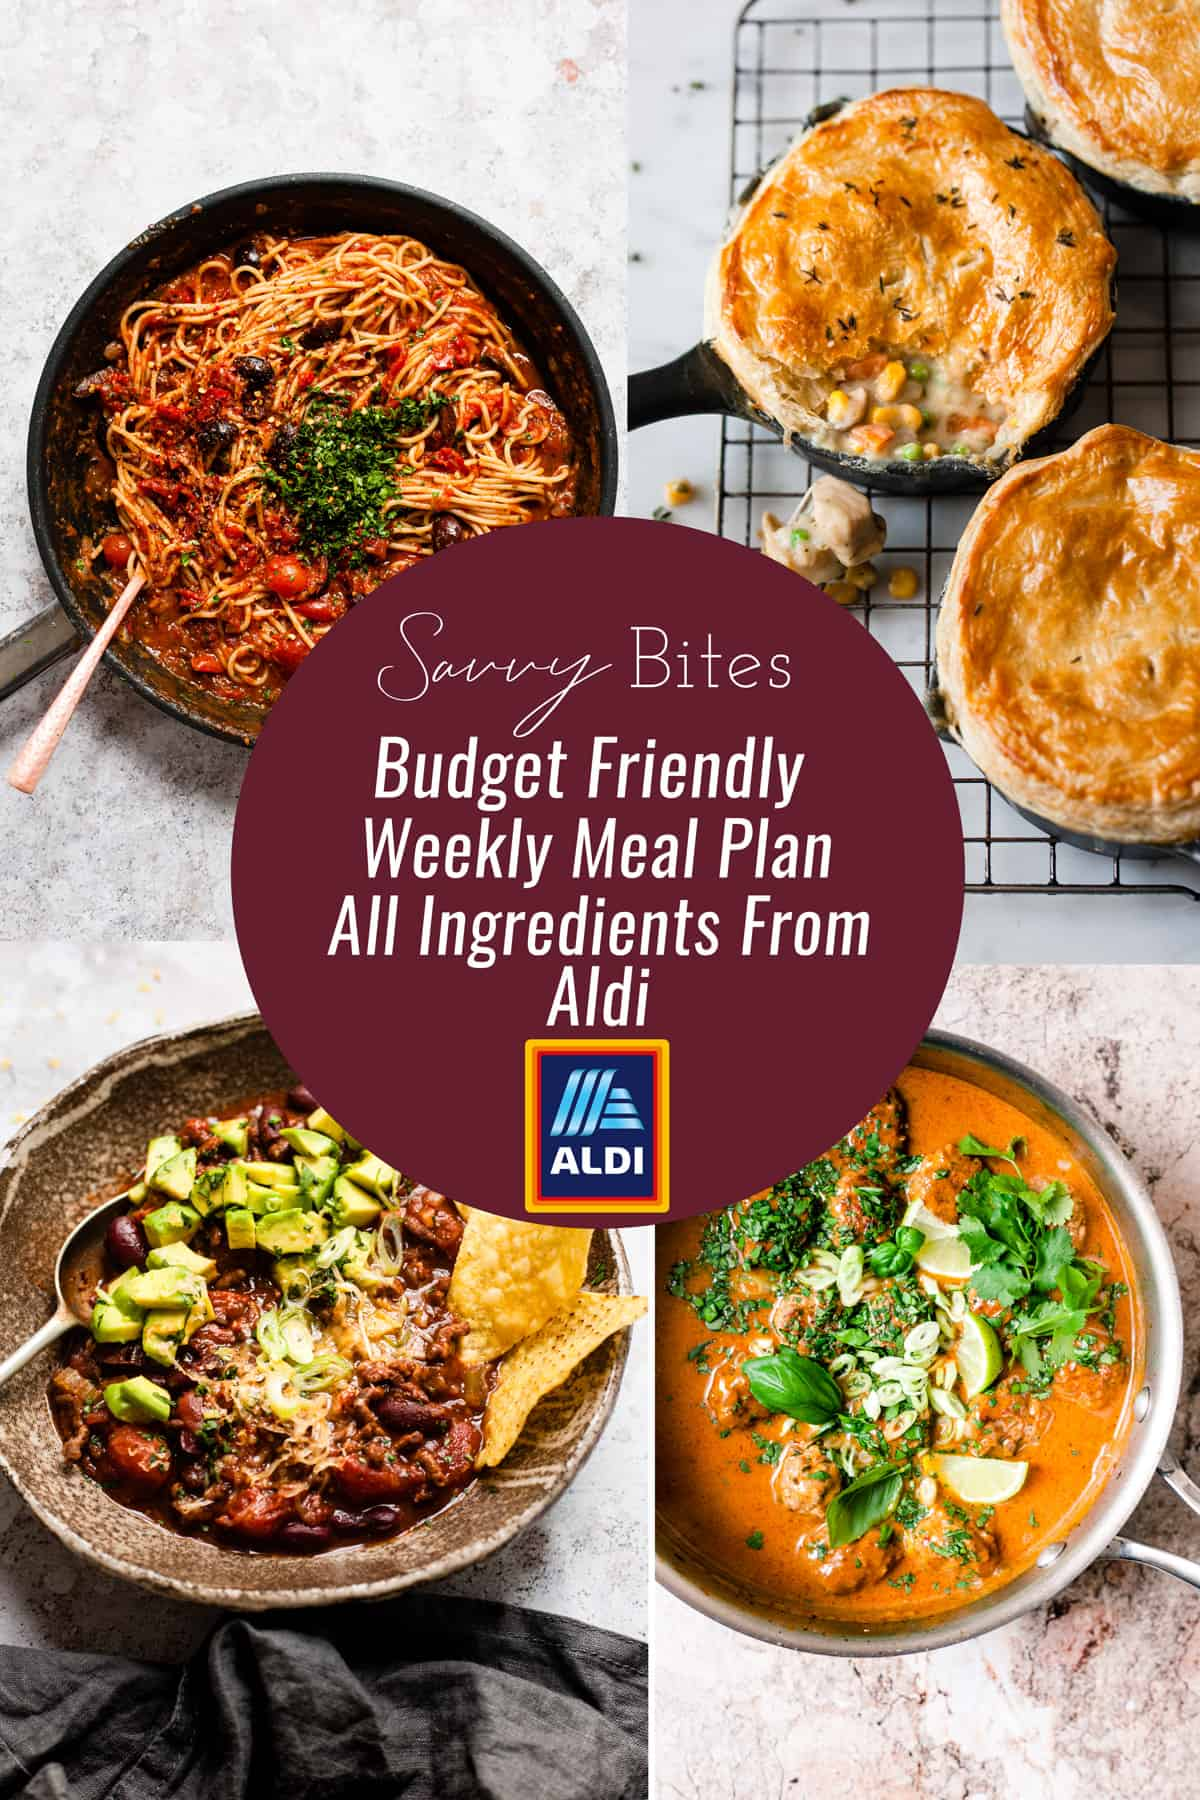 Aldi budget meal plan photo collage